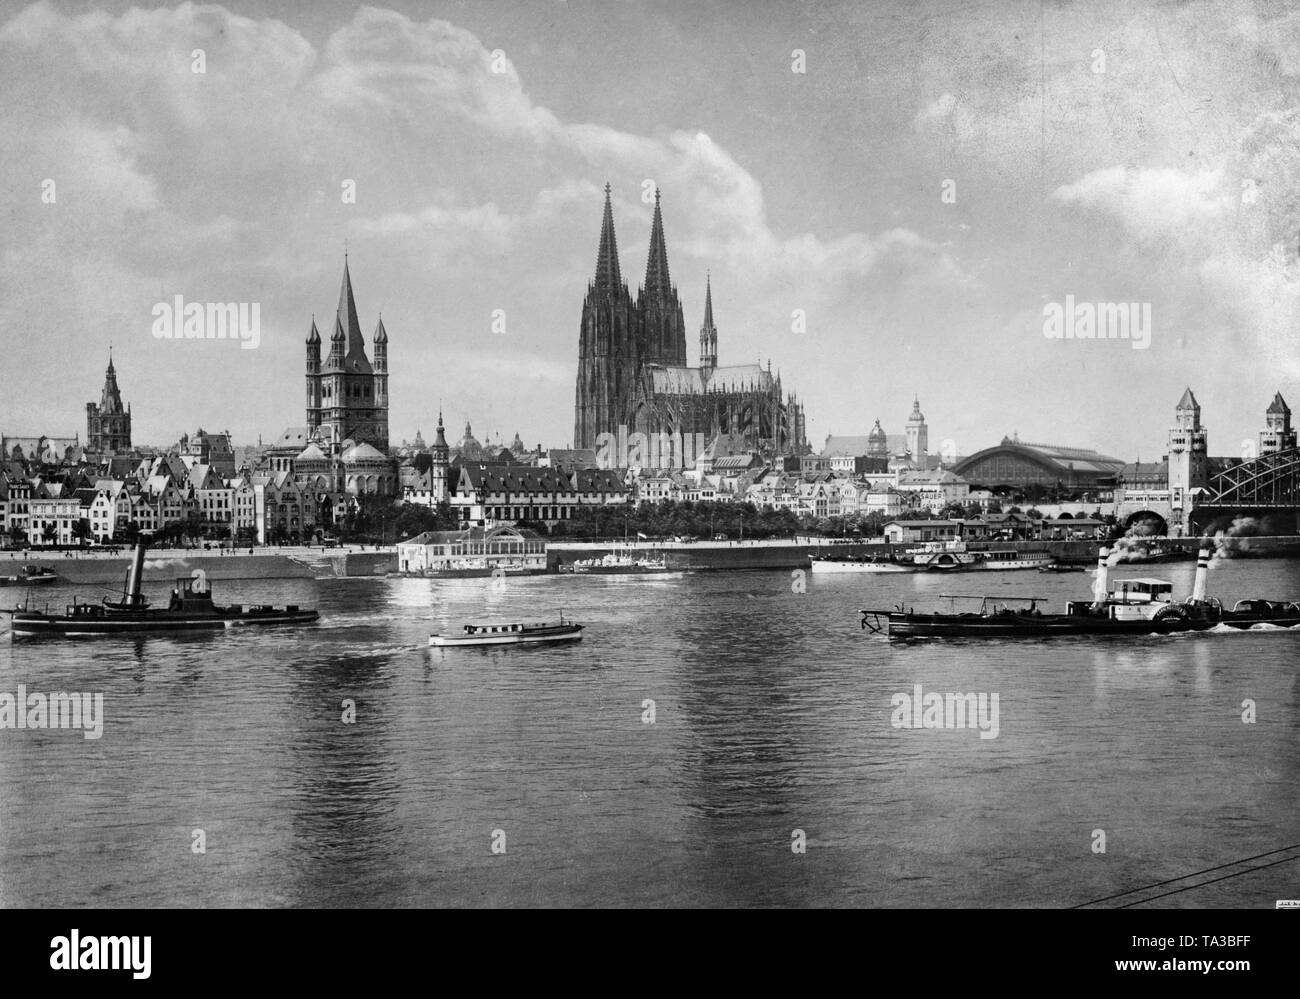 View of the Cologne Rhine riverbank in front of the Great St. Martin Church from 1928. Several large and small steamboats operate on the Rhine. There are people on the shore. The towers, left to right: Town Hall, Great St. Martin Church, Cologne Cathedral. Right in the picture, the Hohenzollern Bridge. Left beside, the Station Hall. - Stock Image